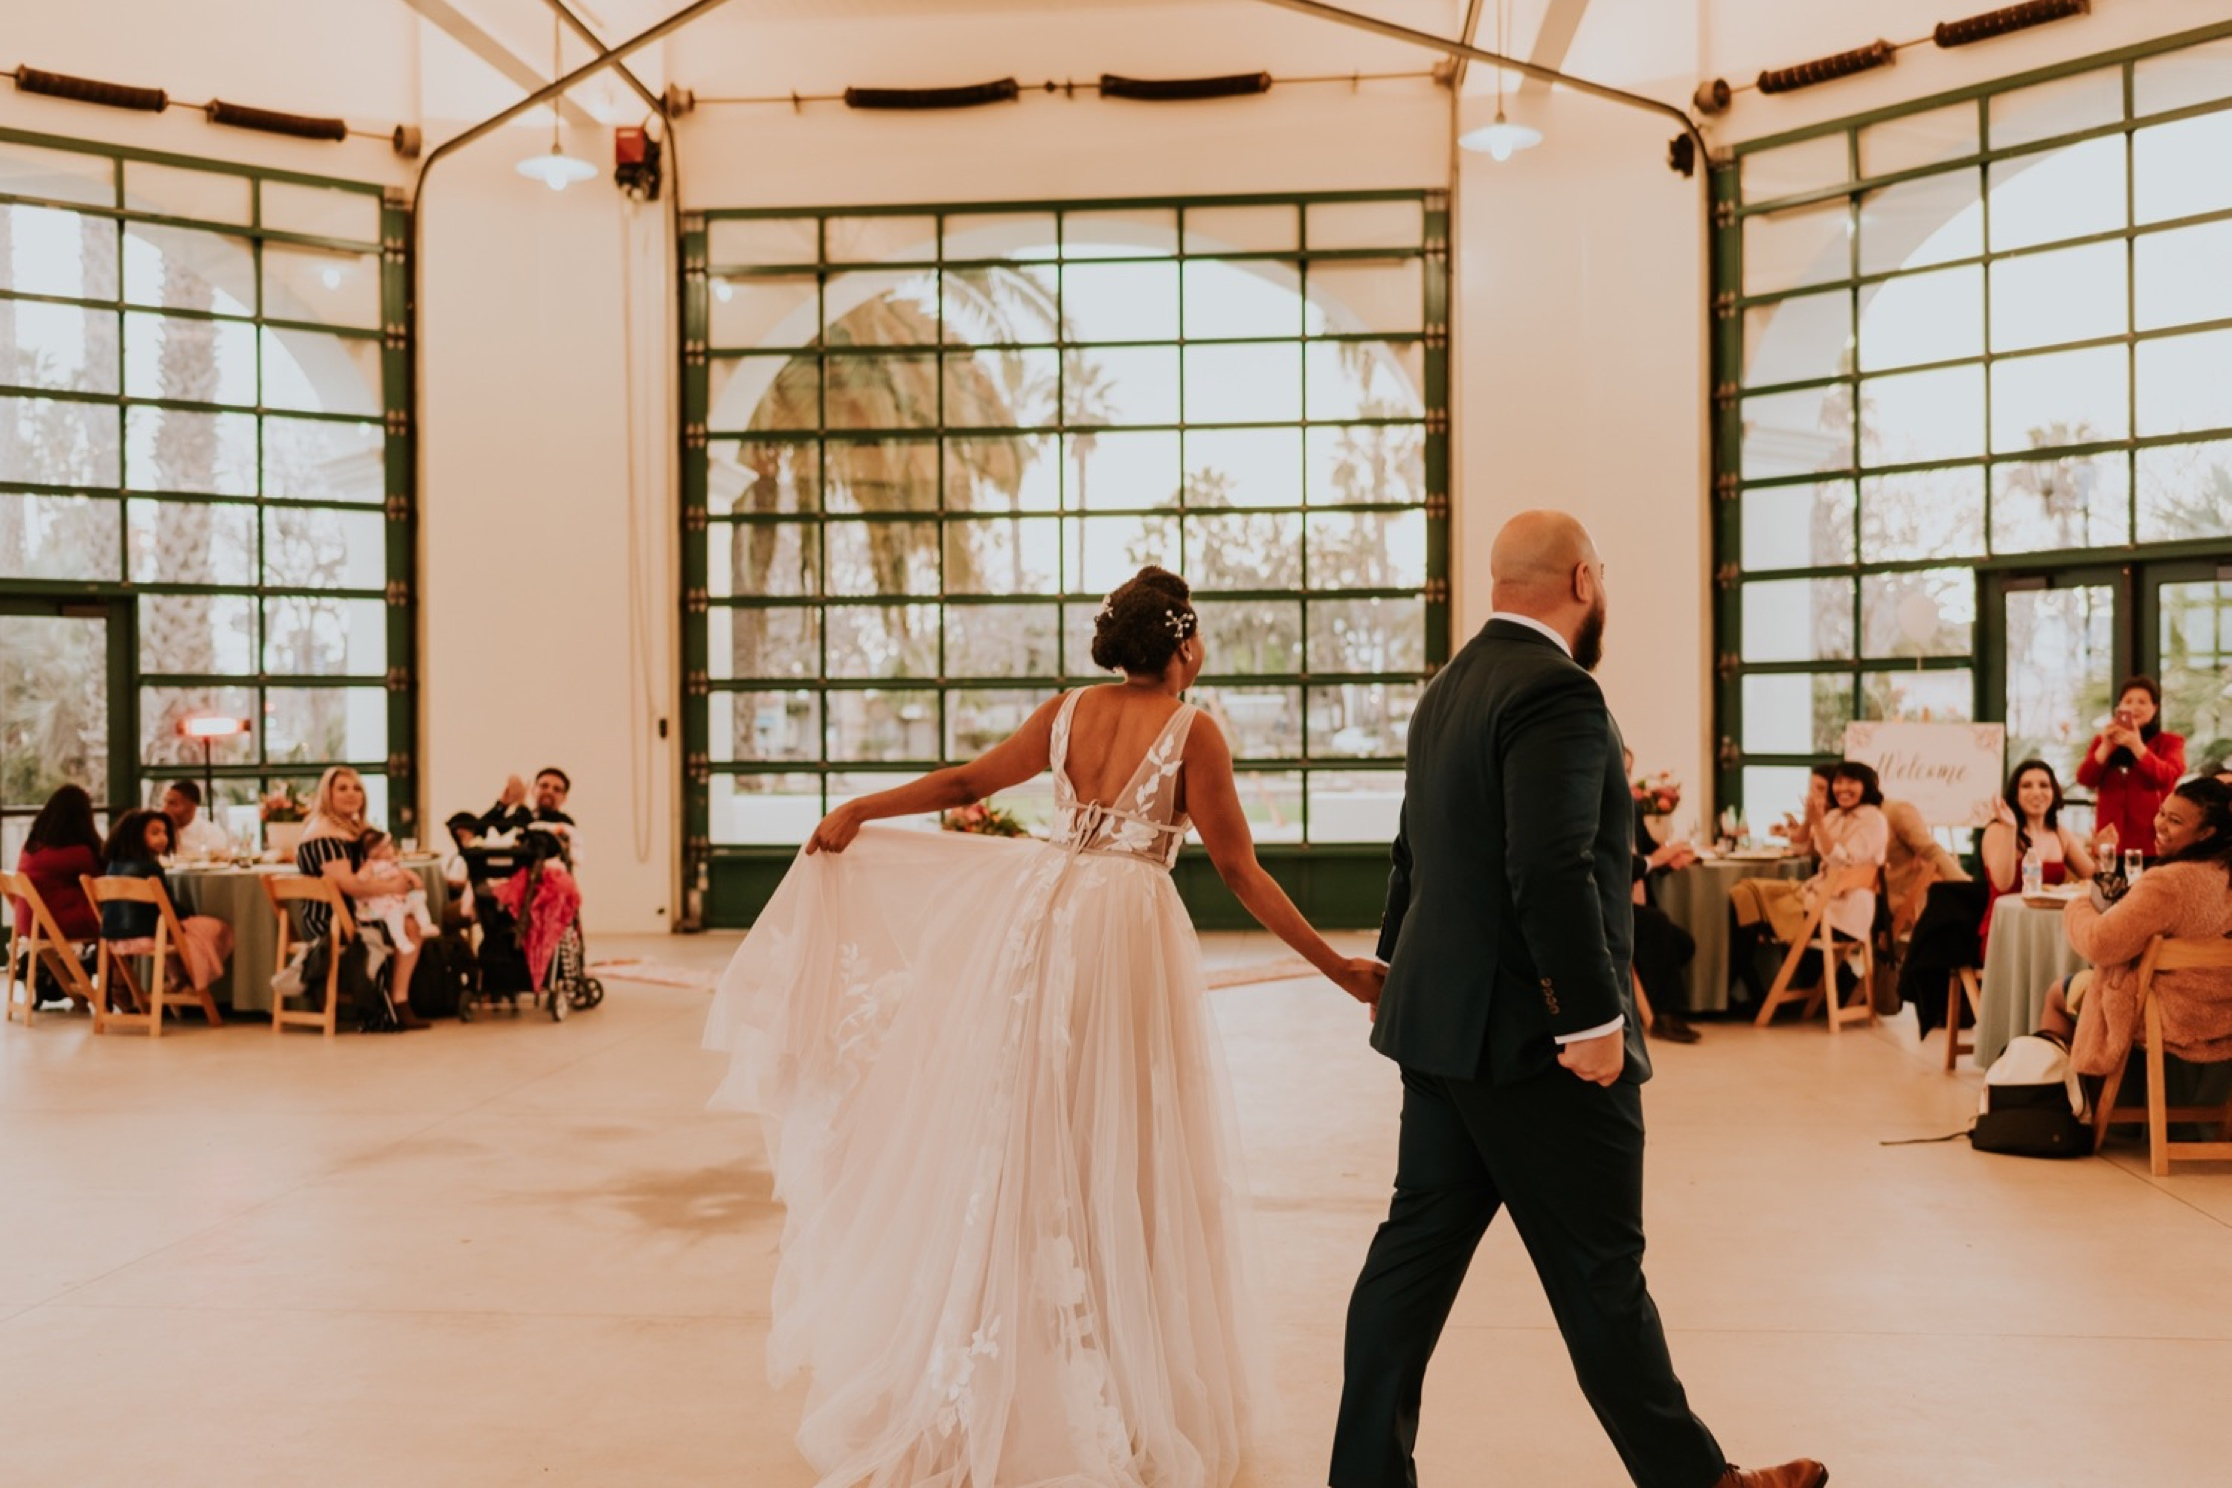 Santa Barbara Wedding at the Carousel House | First Dance | Wedding Reception | Carrie Rogers Photography